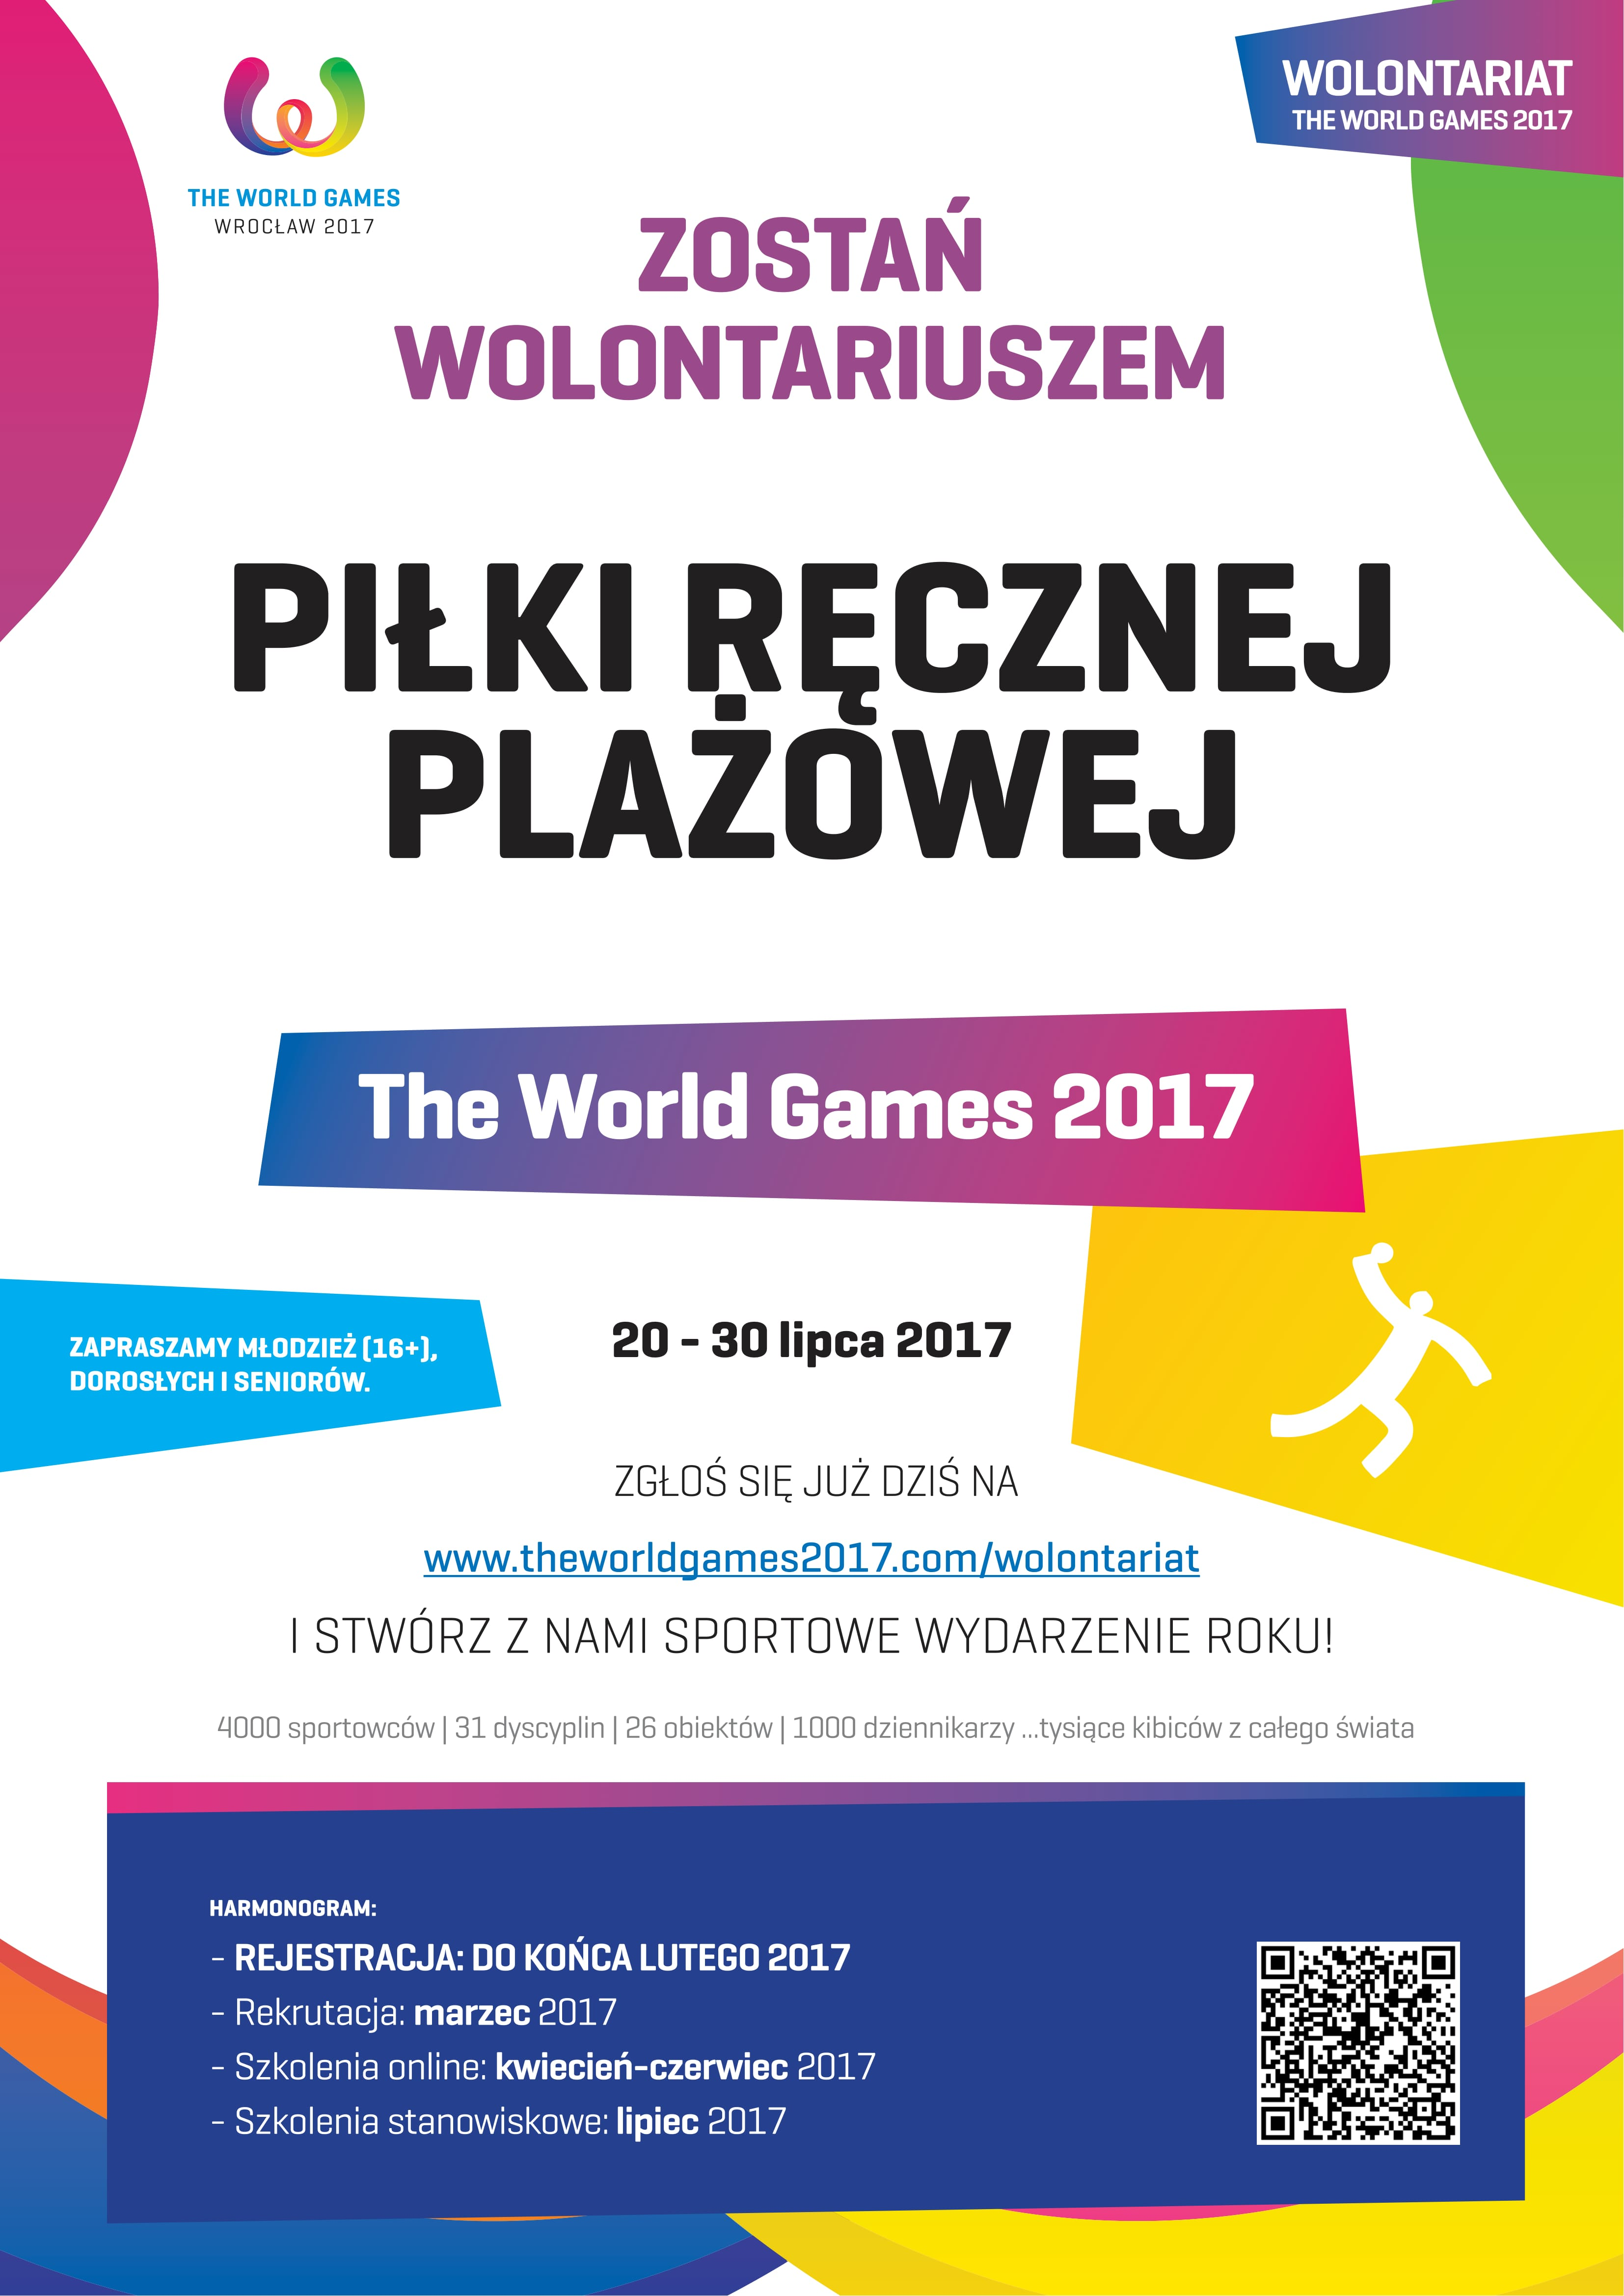 twg2017-wolontariat_a2_komplet_email-14